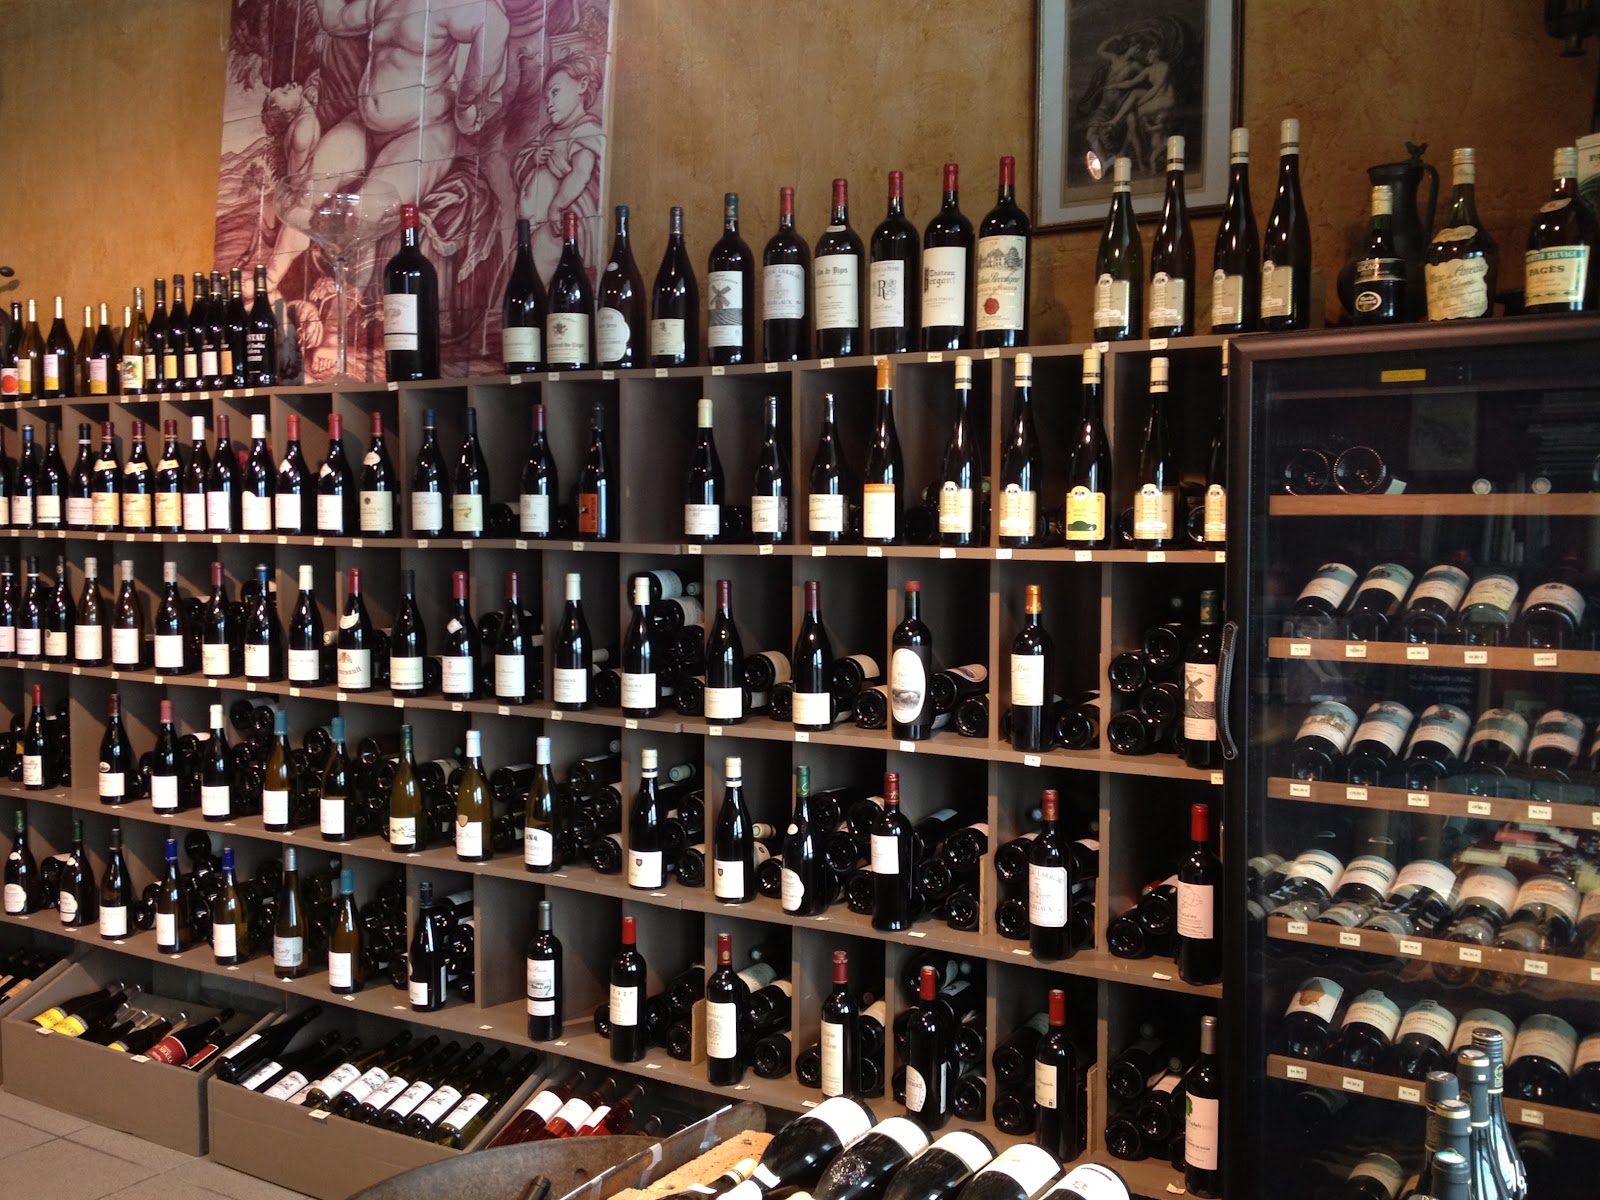 On Castellatou0027s shelves established legends like the wines of the late Didier Dageneau sit comfortably besides bottles by potential legends-to-come like ... & not drinking poison in paris: a godsend: bacchus et ariane 75006